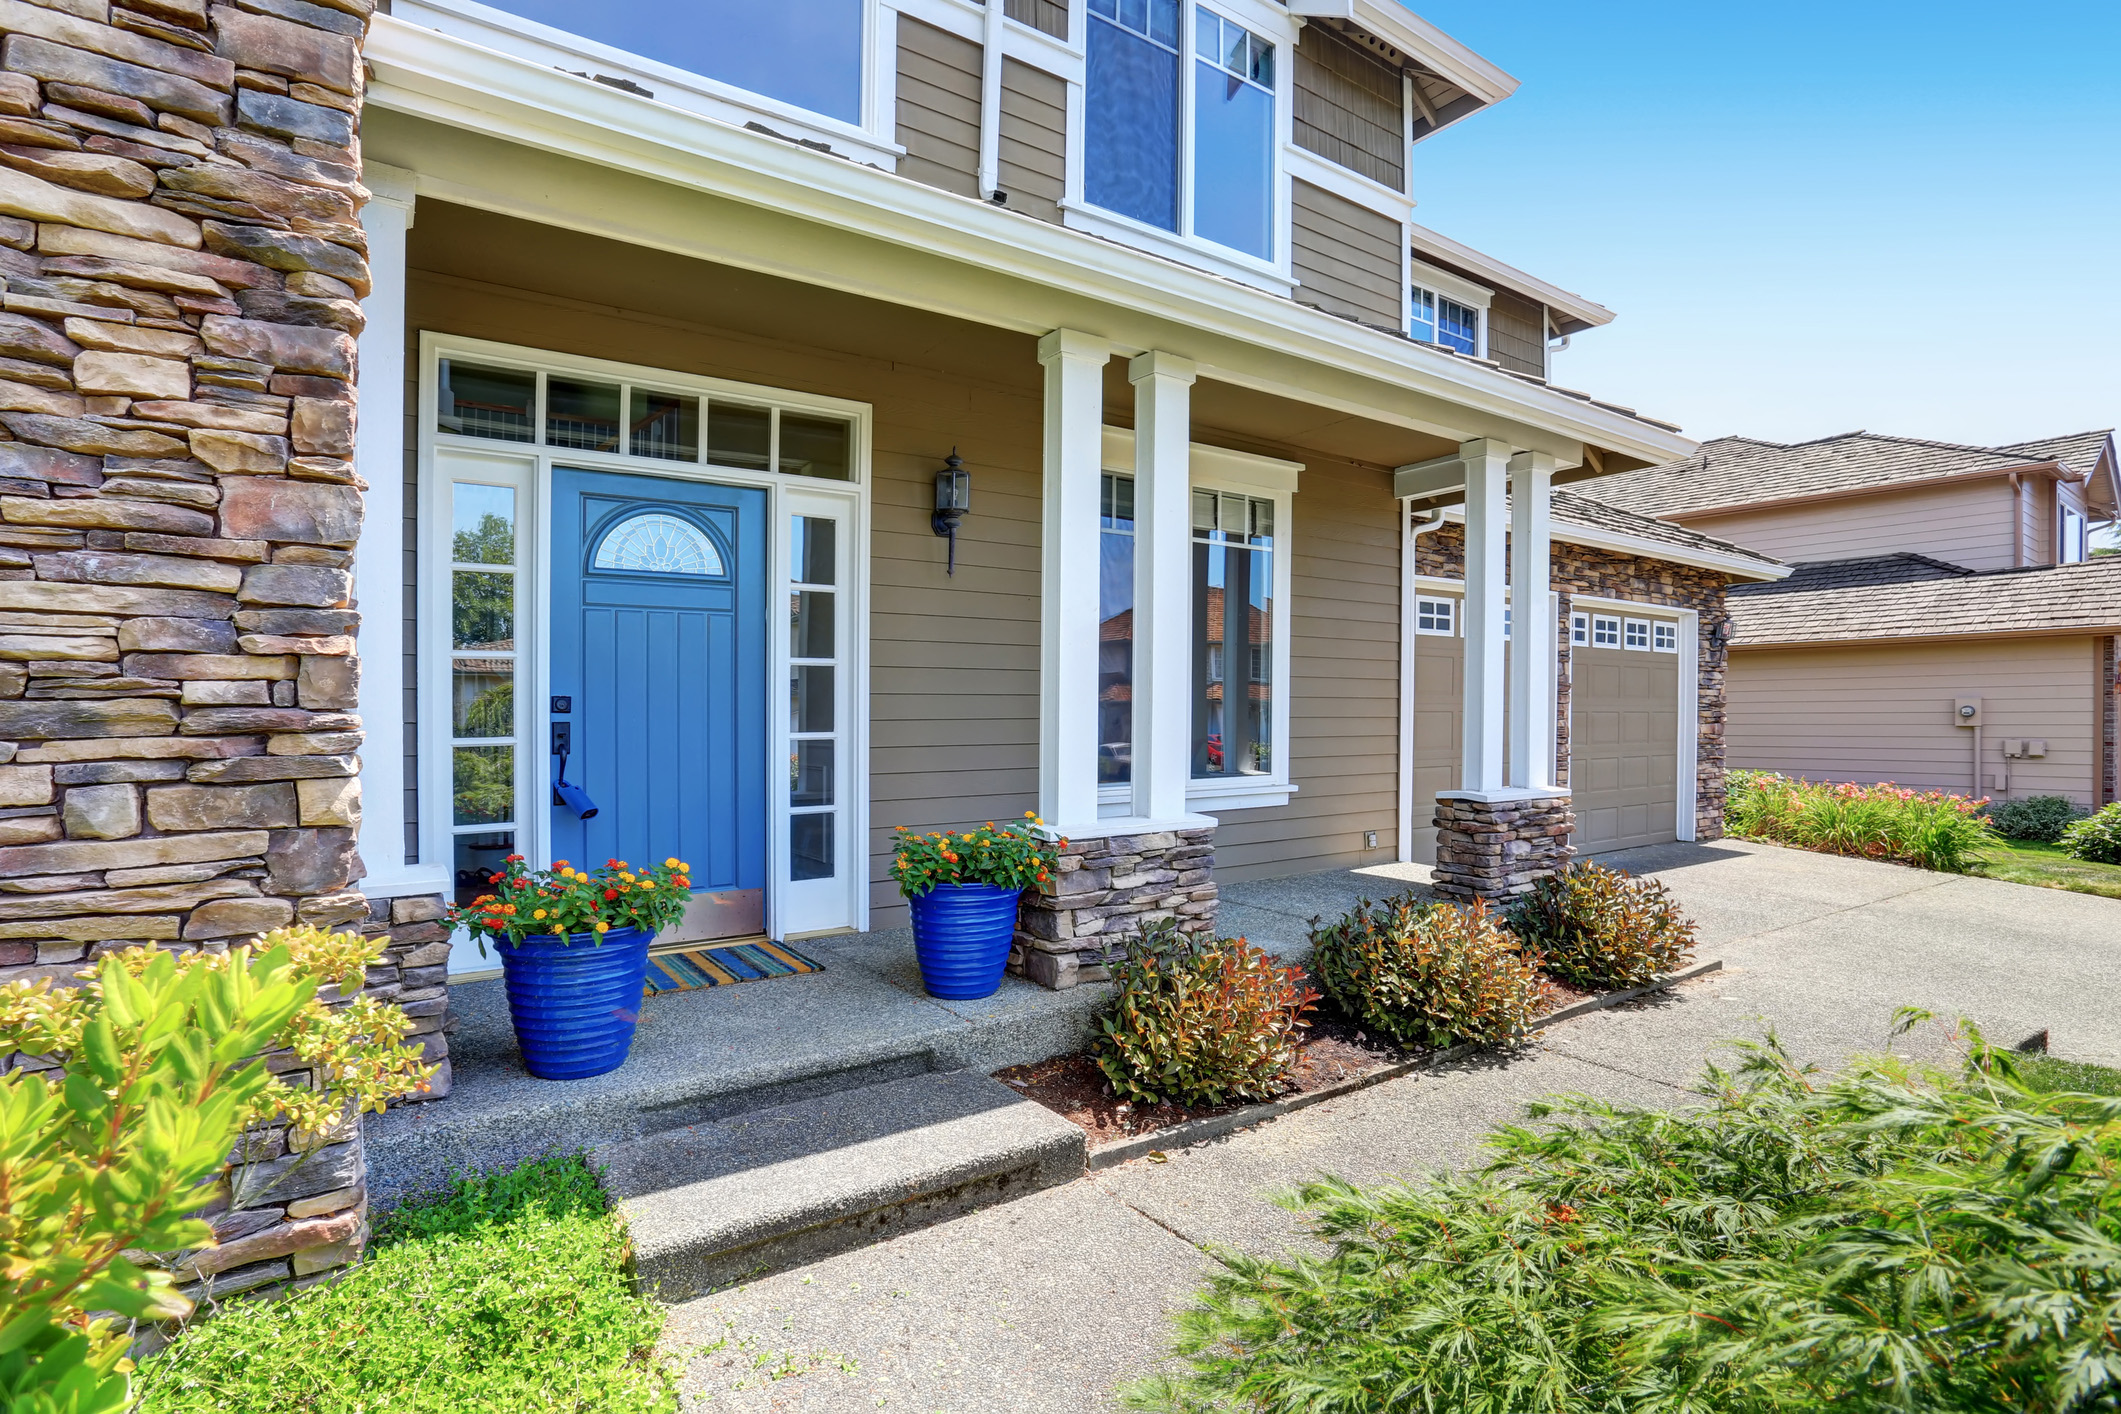 Ho home property management gosford - A Guide For Investing In Rental Property Real Estate Investments Us News